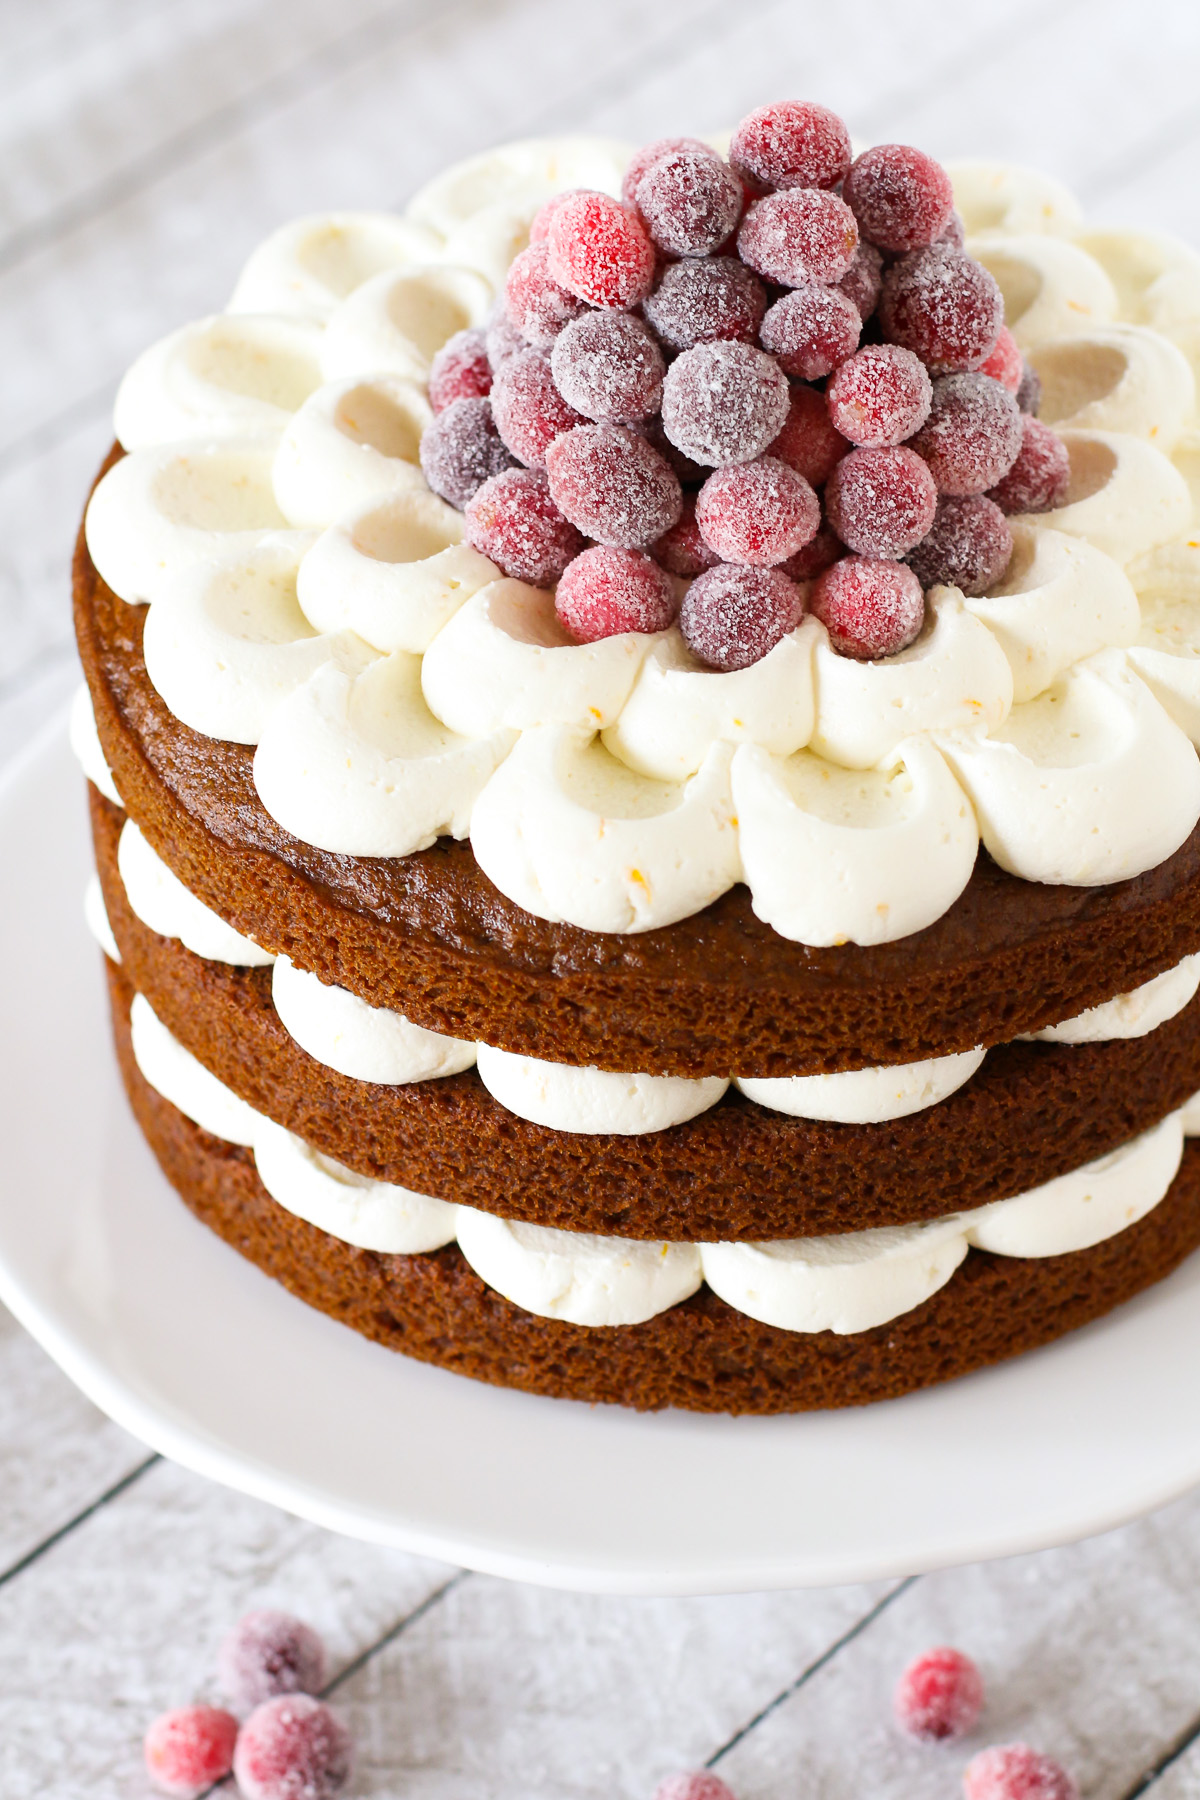 Gluten free vegan gingerbread layer cake with sugared for Decoration layer cake